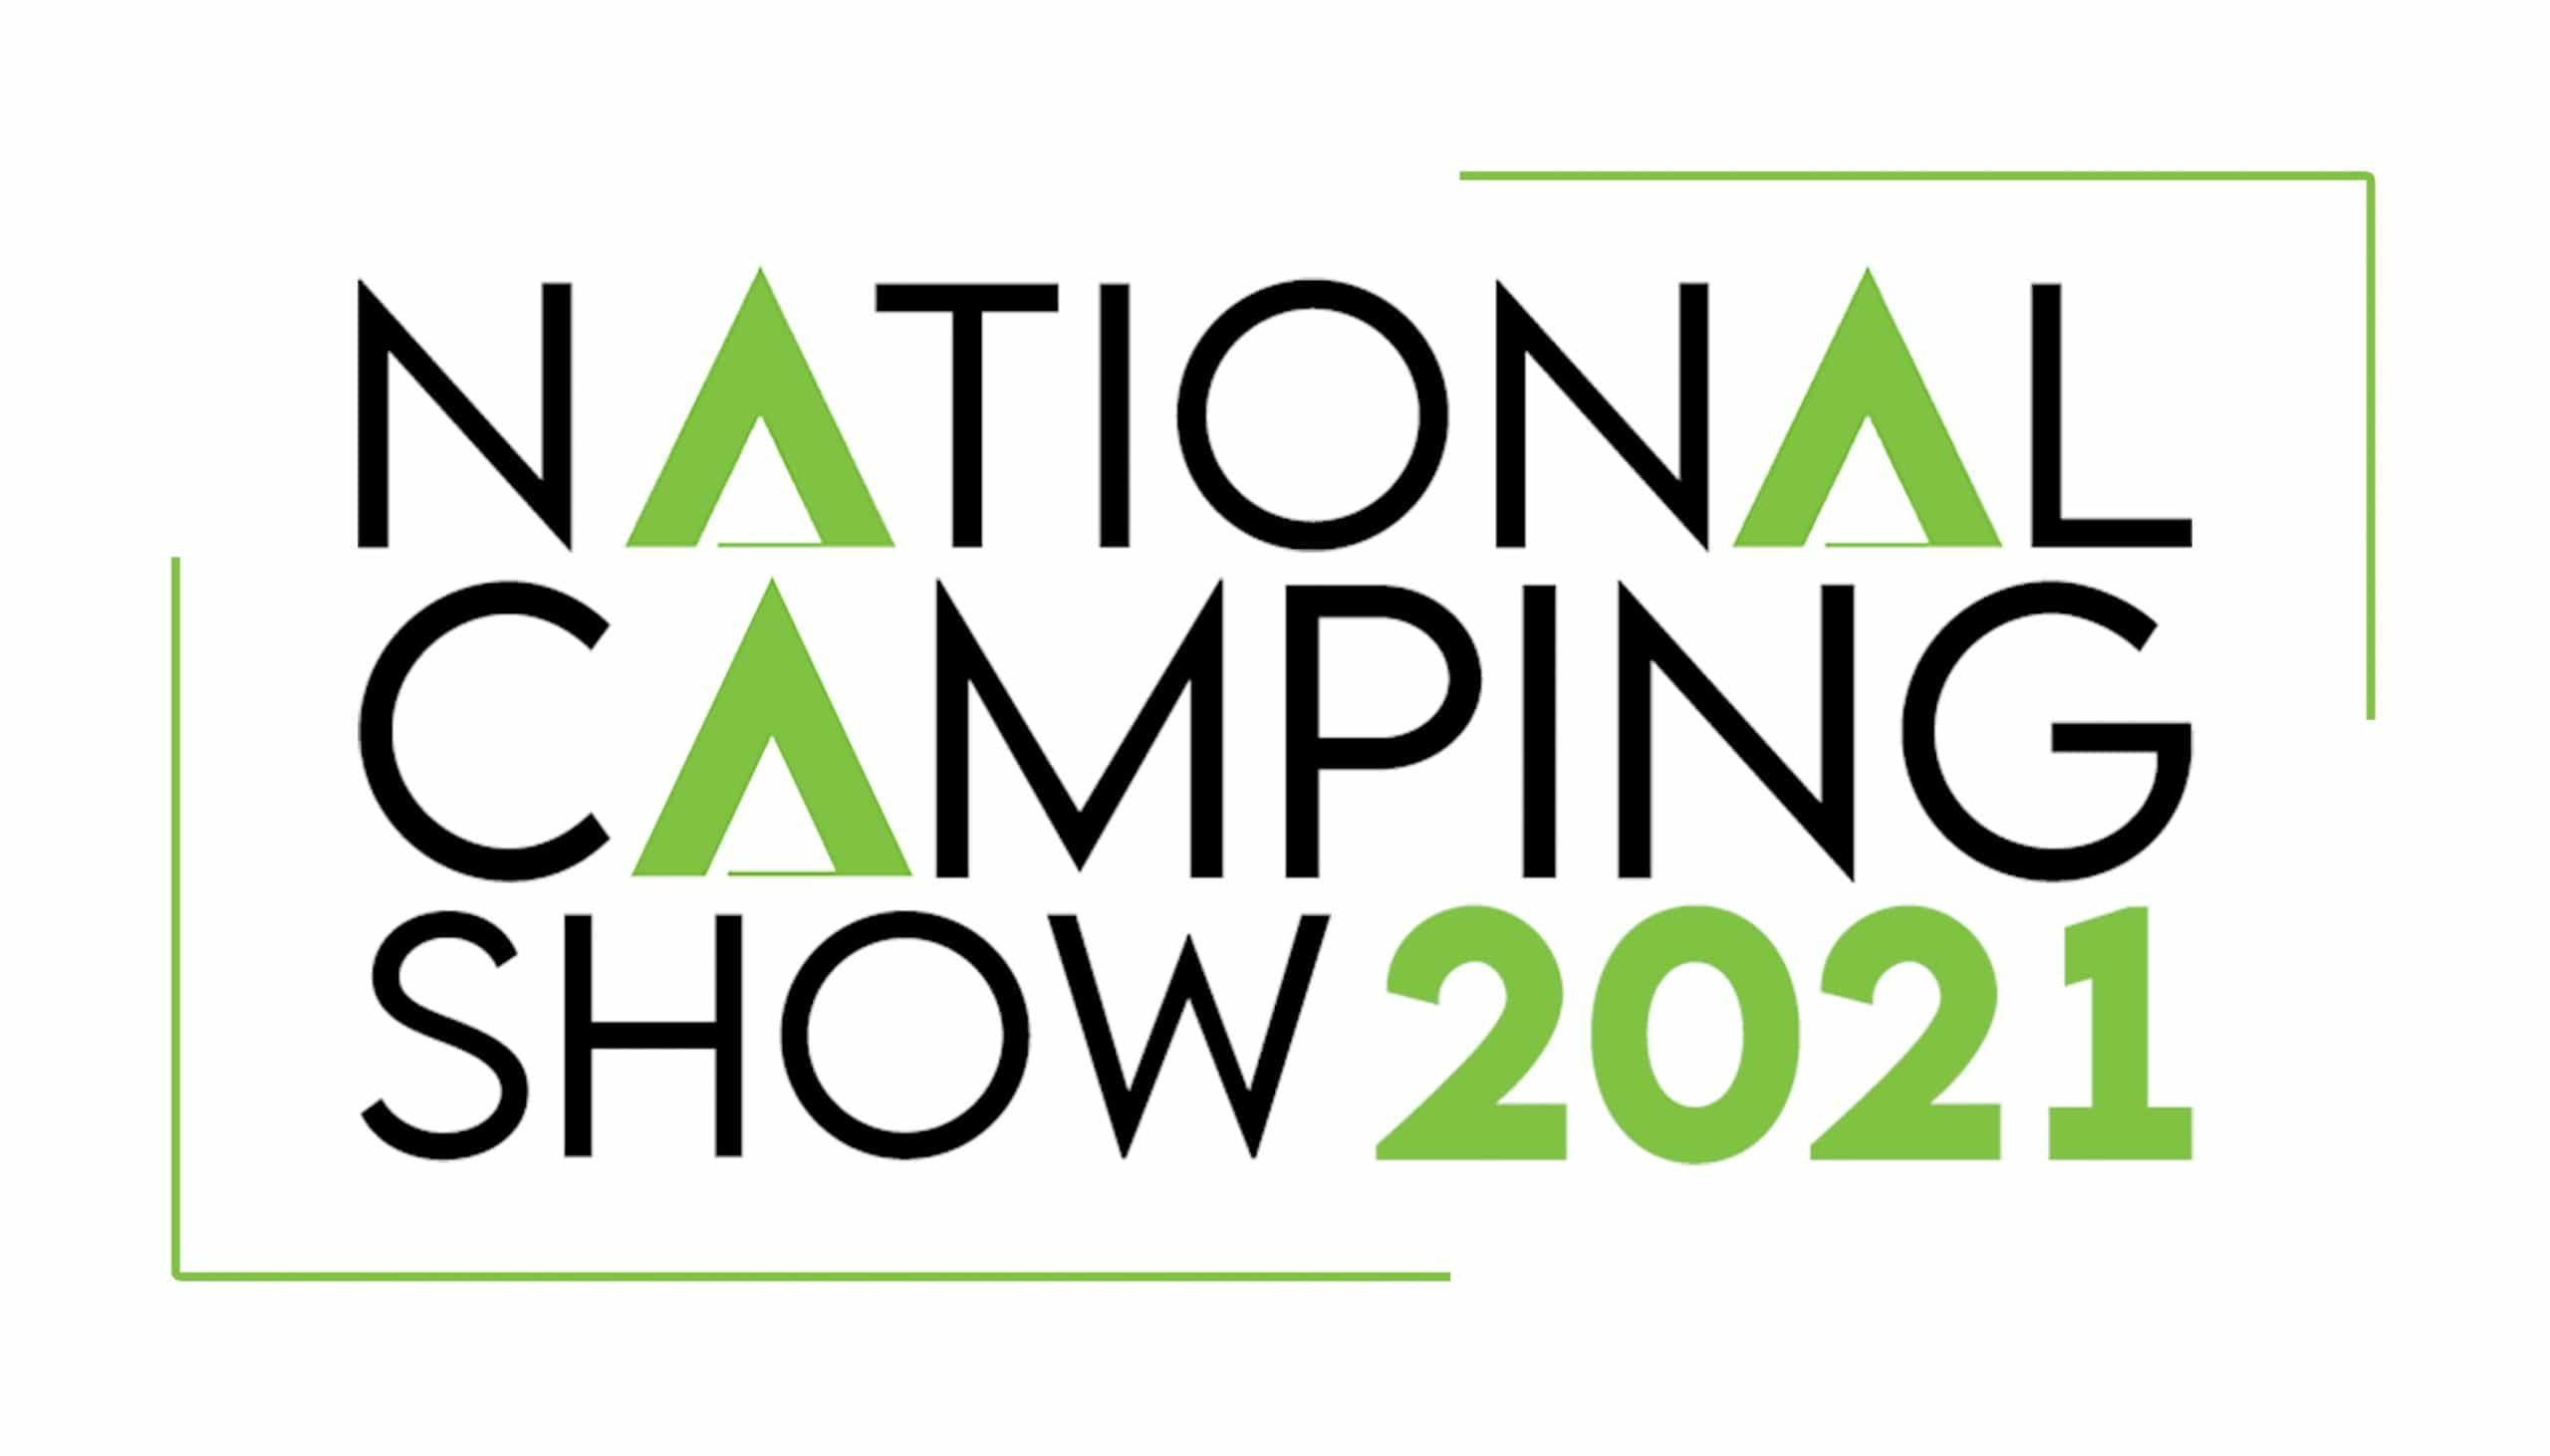 https://mcspr.co.uk/wp-content/uploads/2021/09/National-Camping-Show-2021-1-scaled.jpg